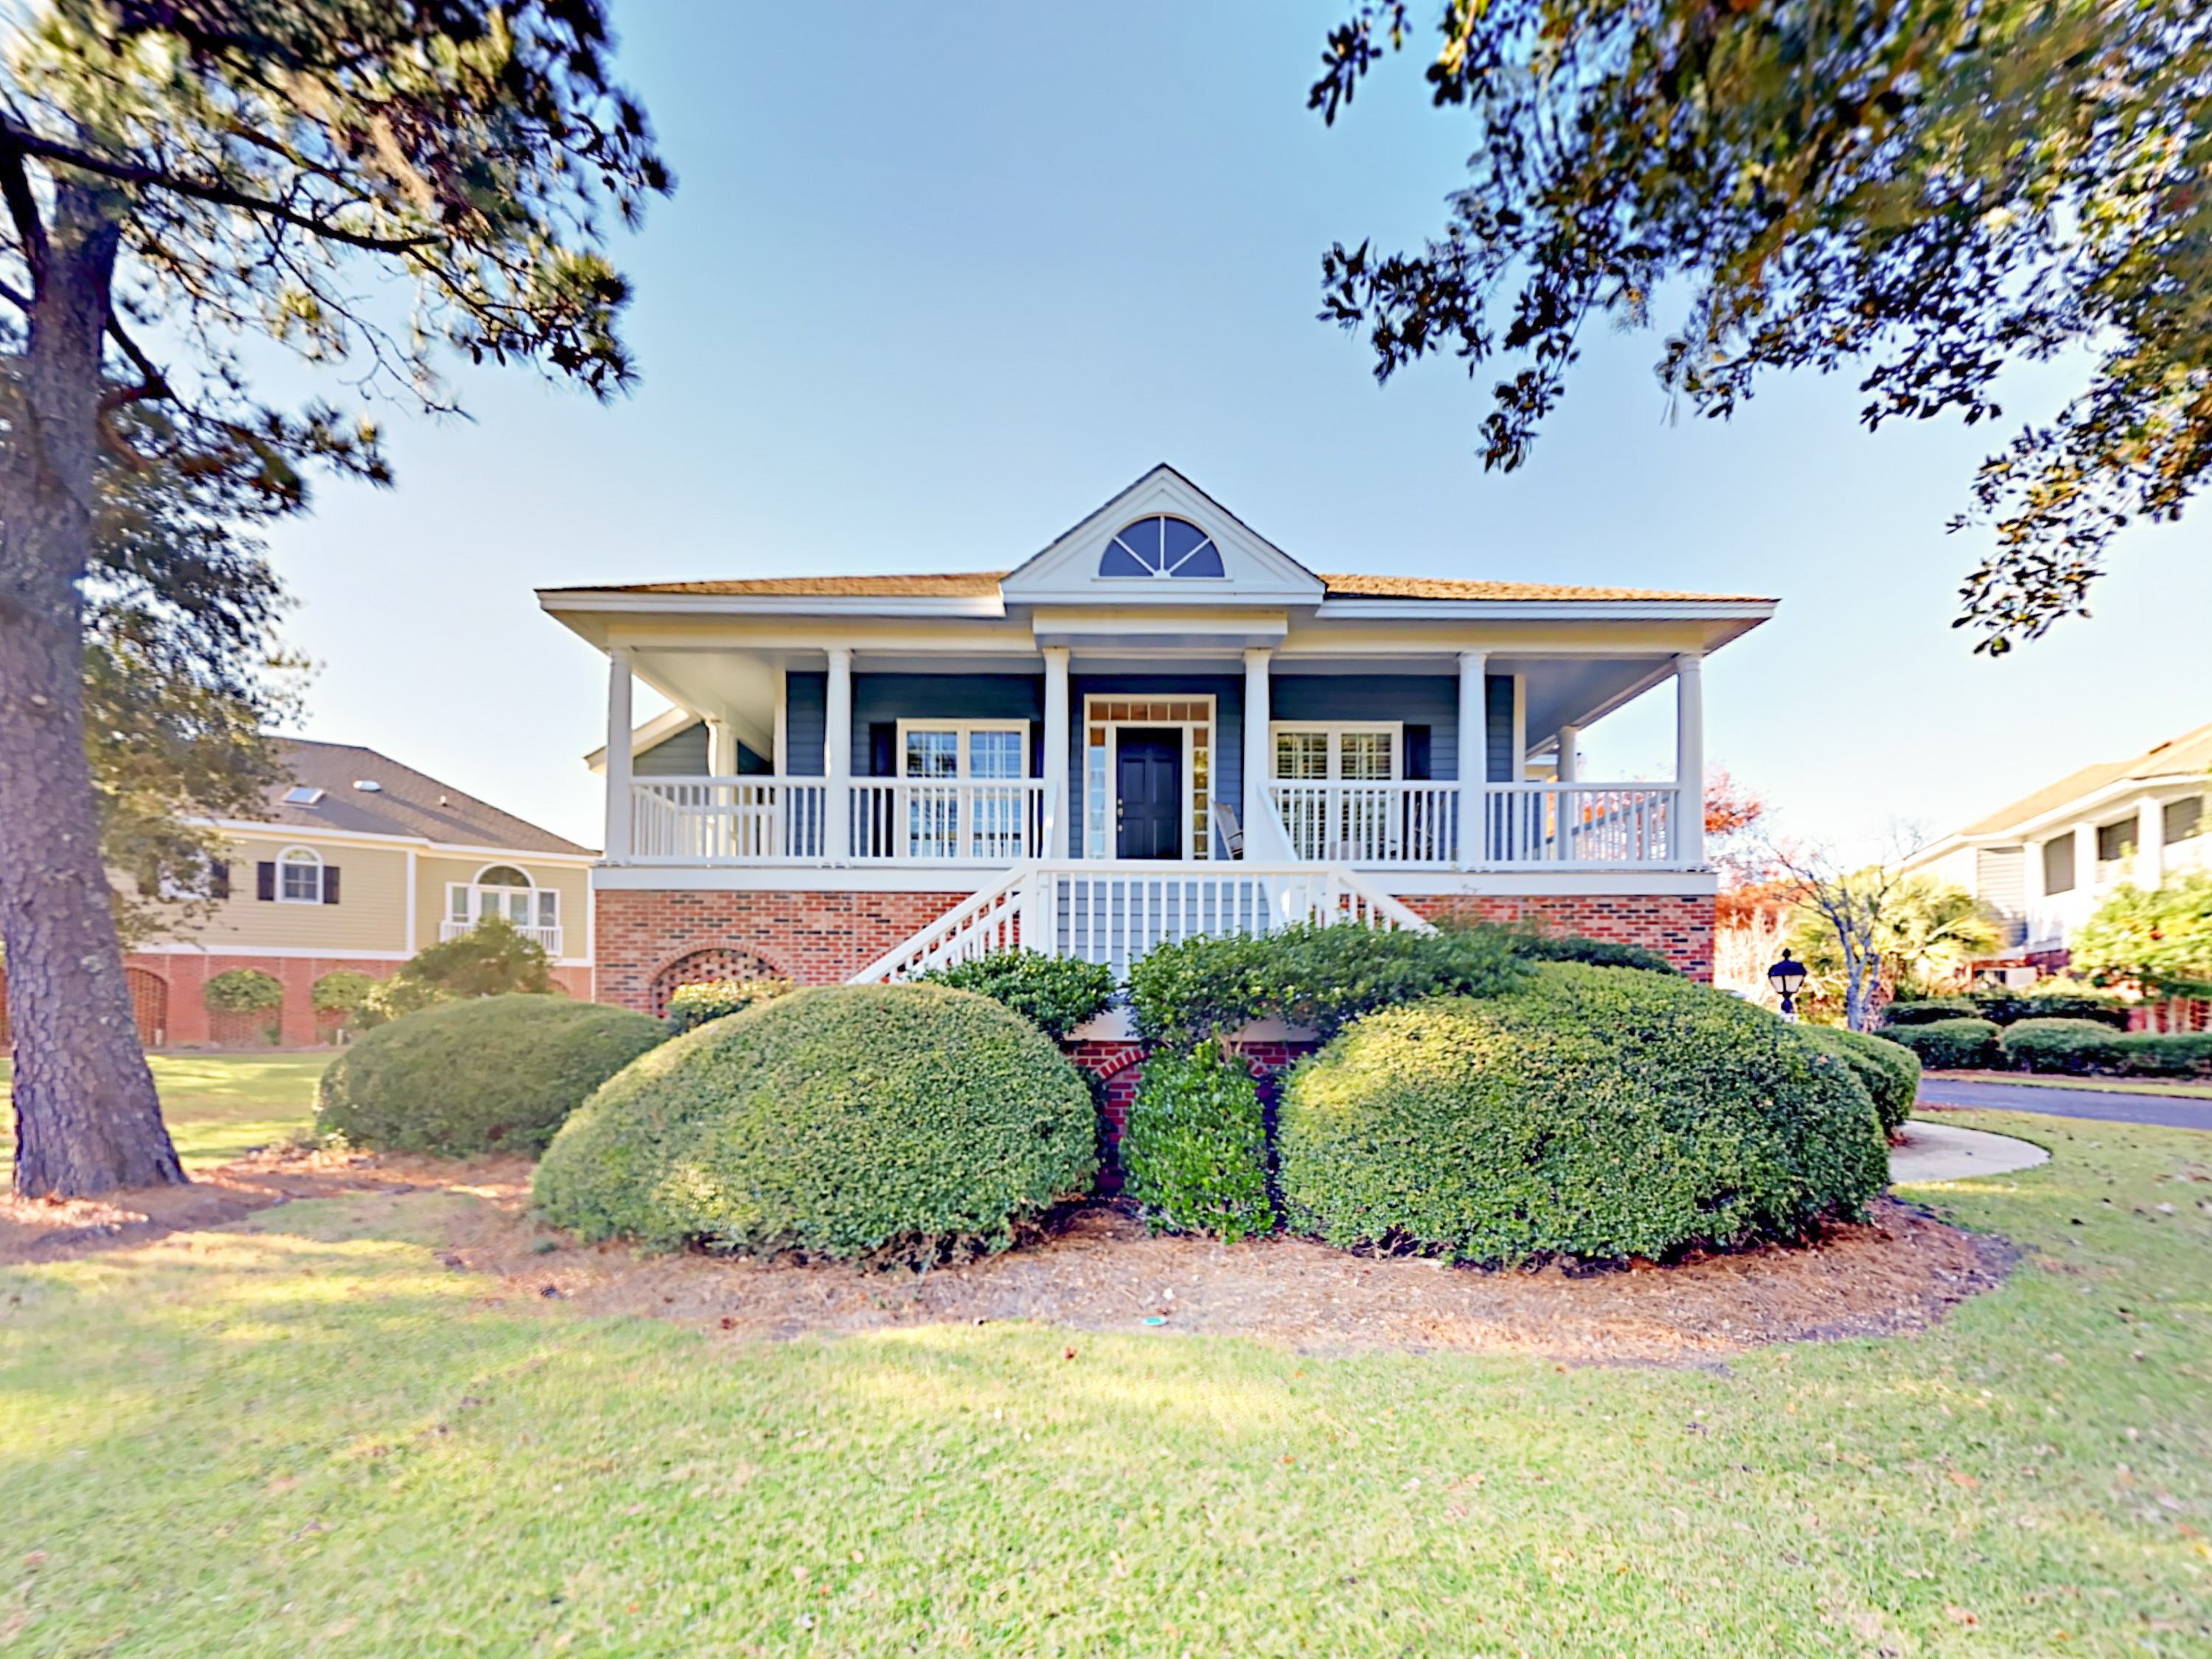 Georgetown SC Vacation Rental This stunning home